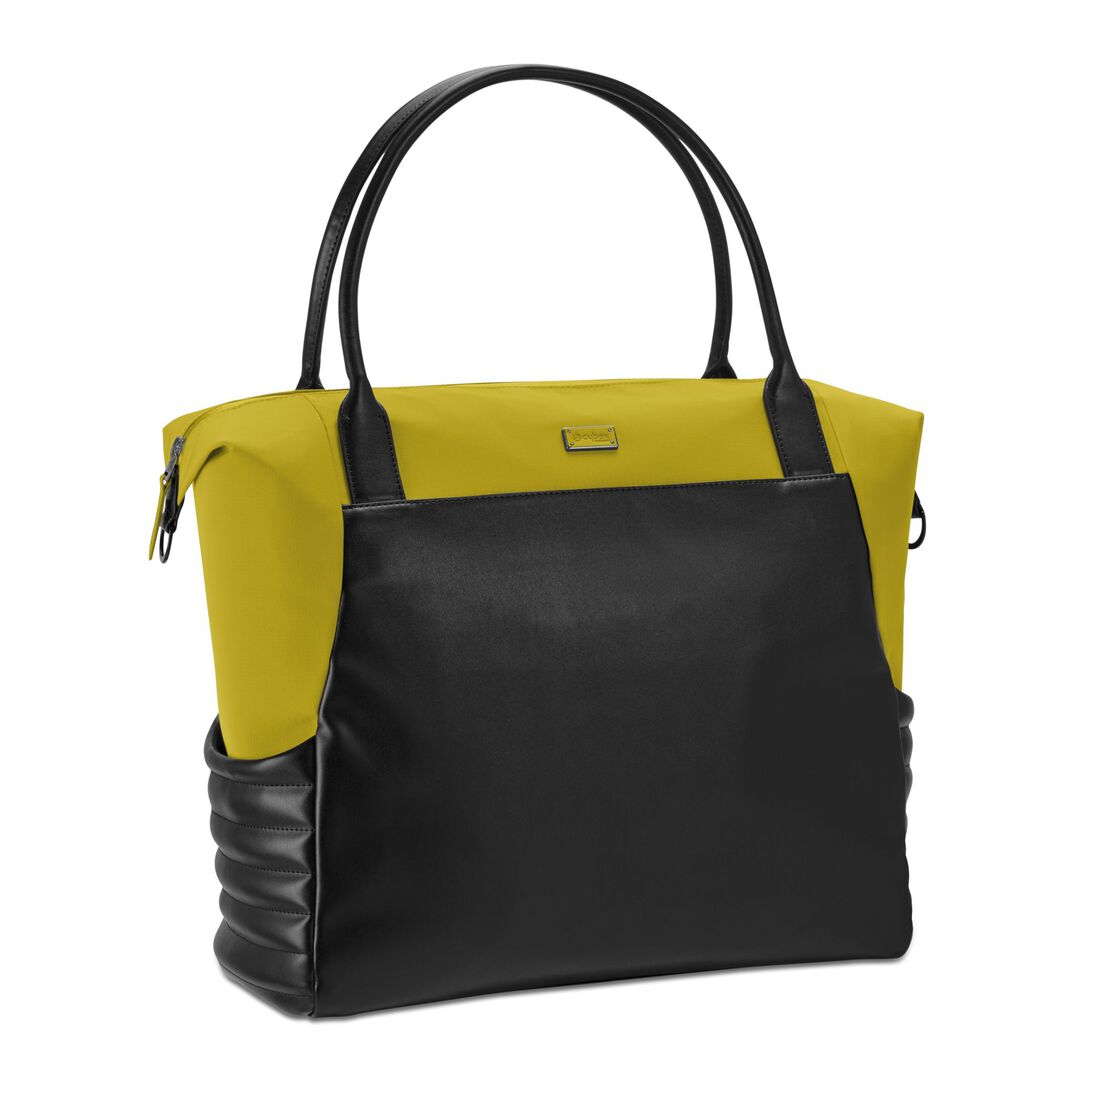 CYBEX Priam Changing Bag - Mustard Yellow in Mustard Yellow large image number 1